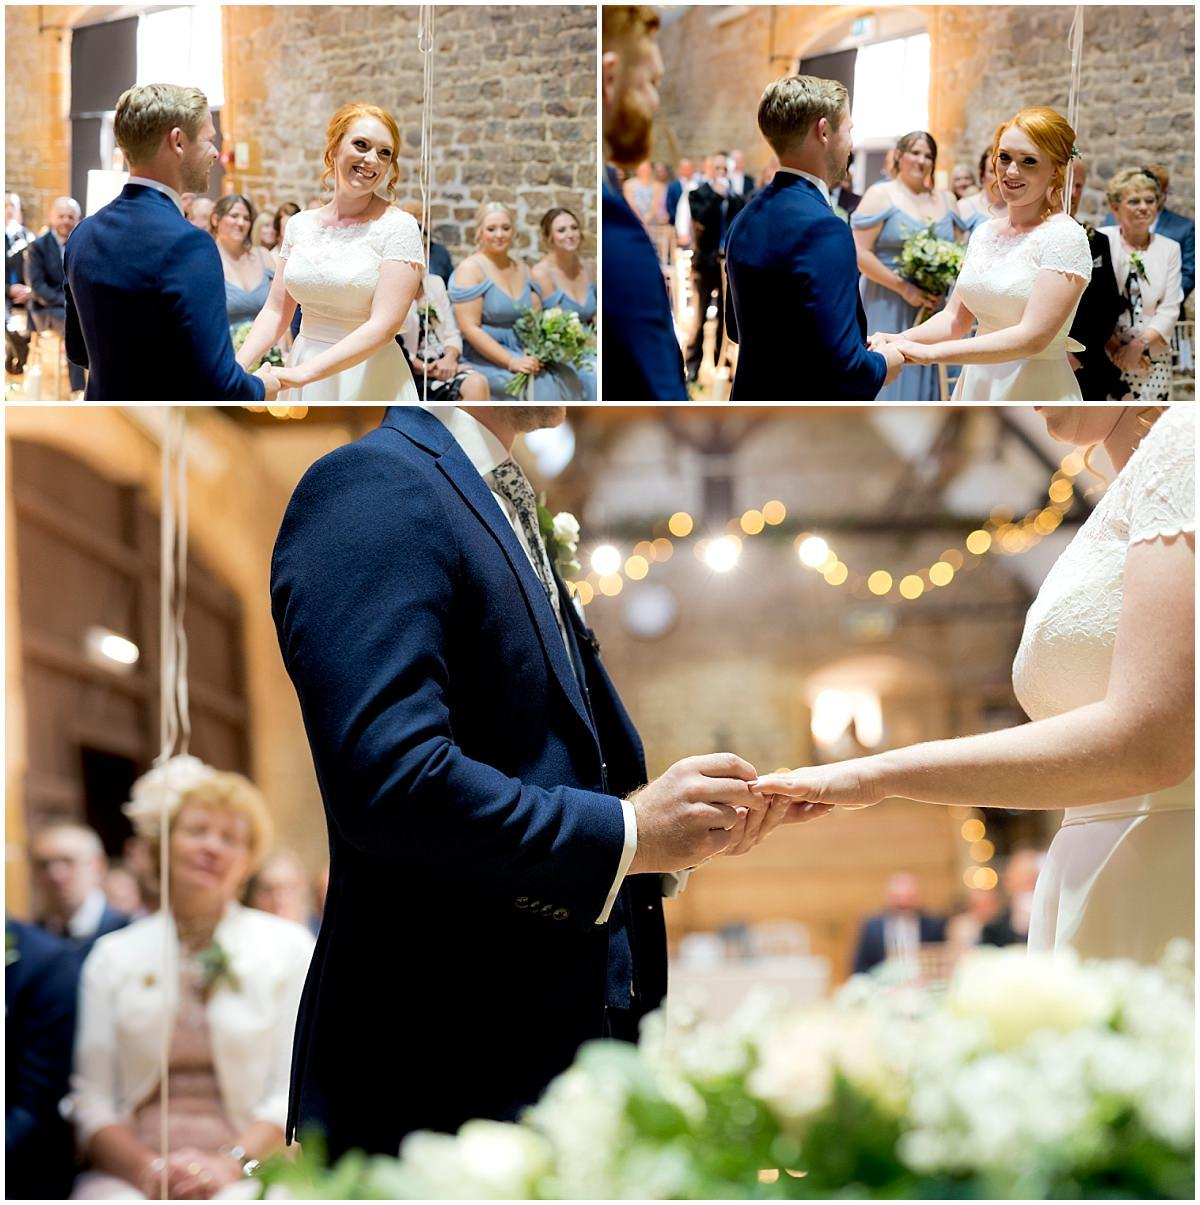 The Barns at Hunsbury Hill Wedding ceremony